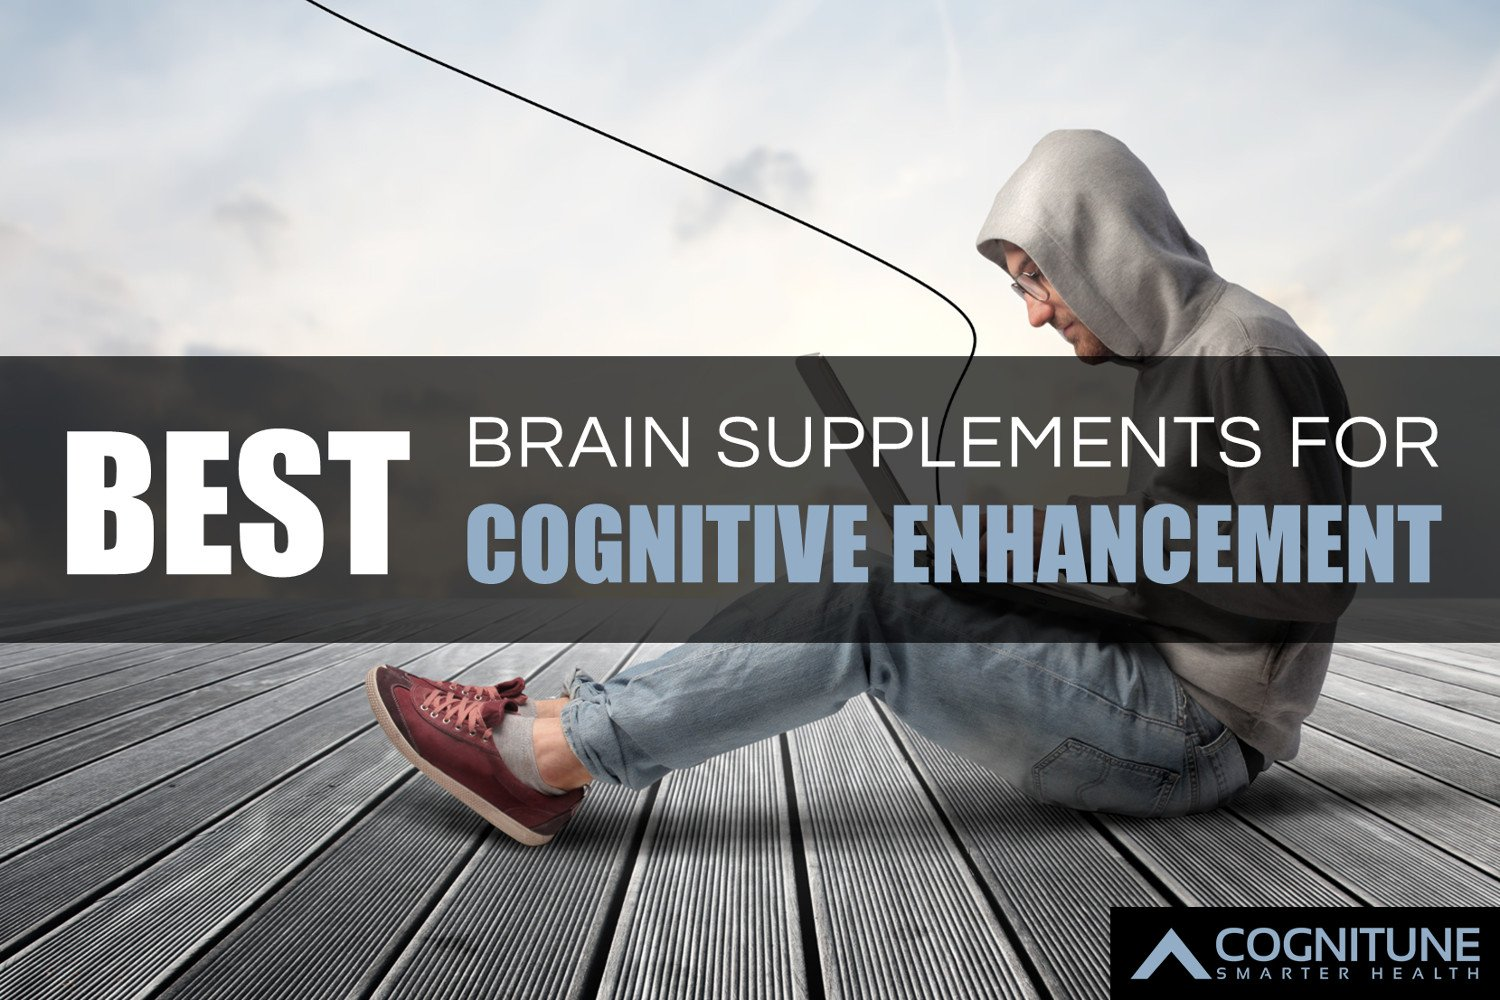 12 Best Brain Booster Supplements and Cognitive Enhancement Pills 2018